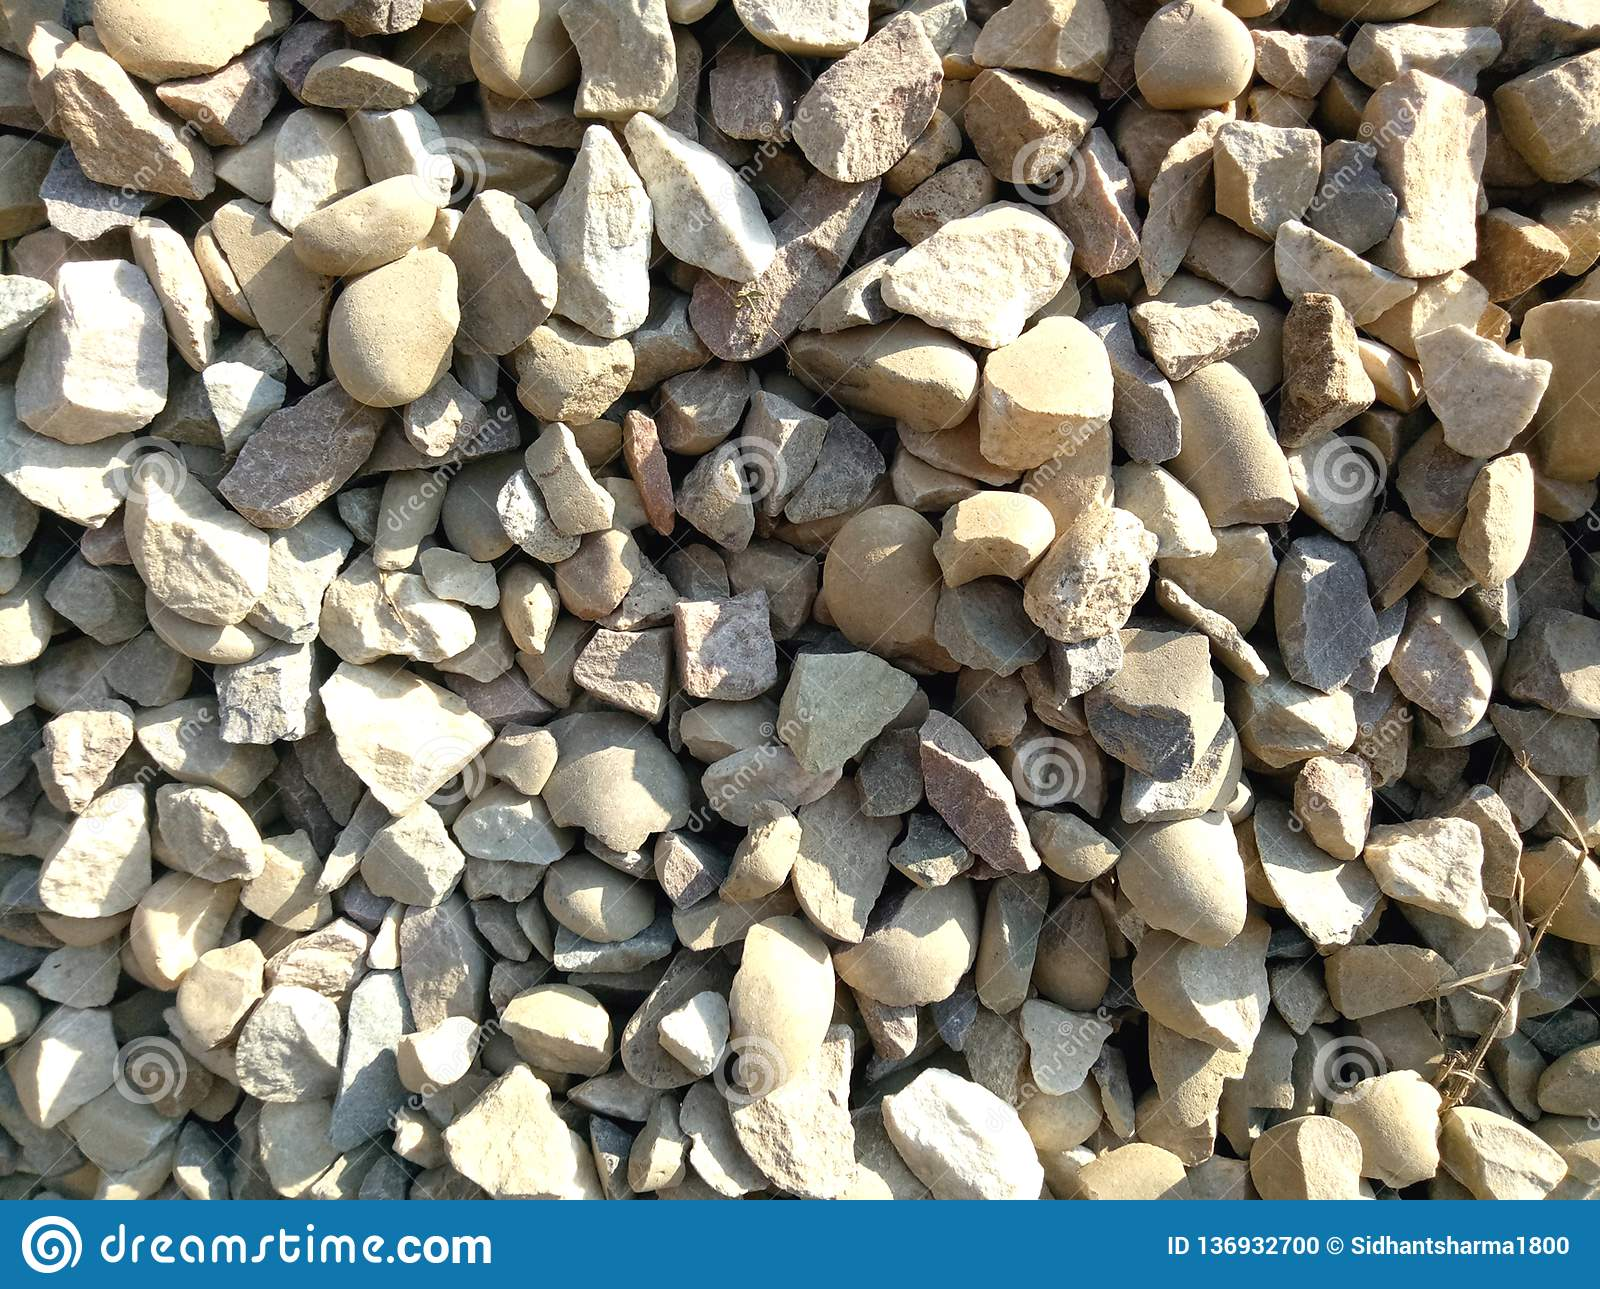 Colorful stones texture background wallpaper. vivid vector illustration.